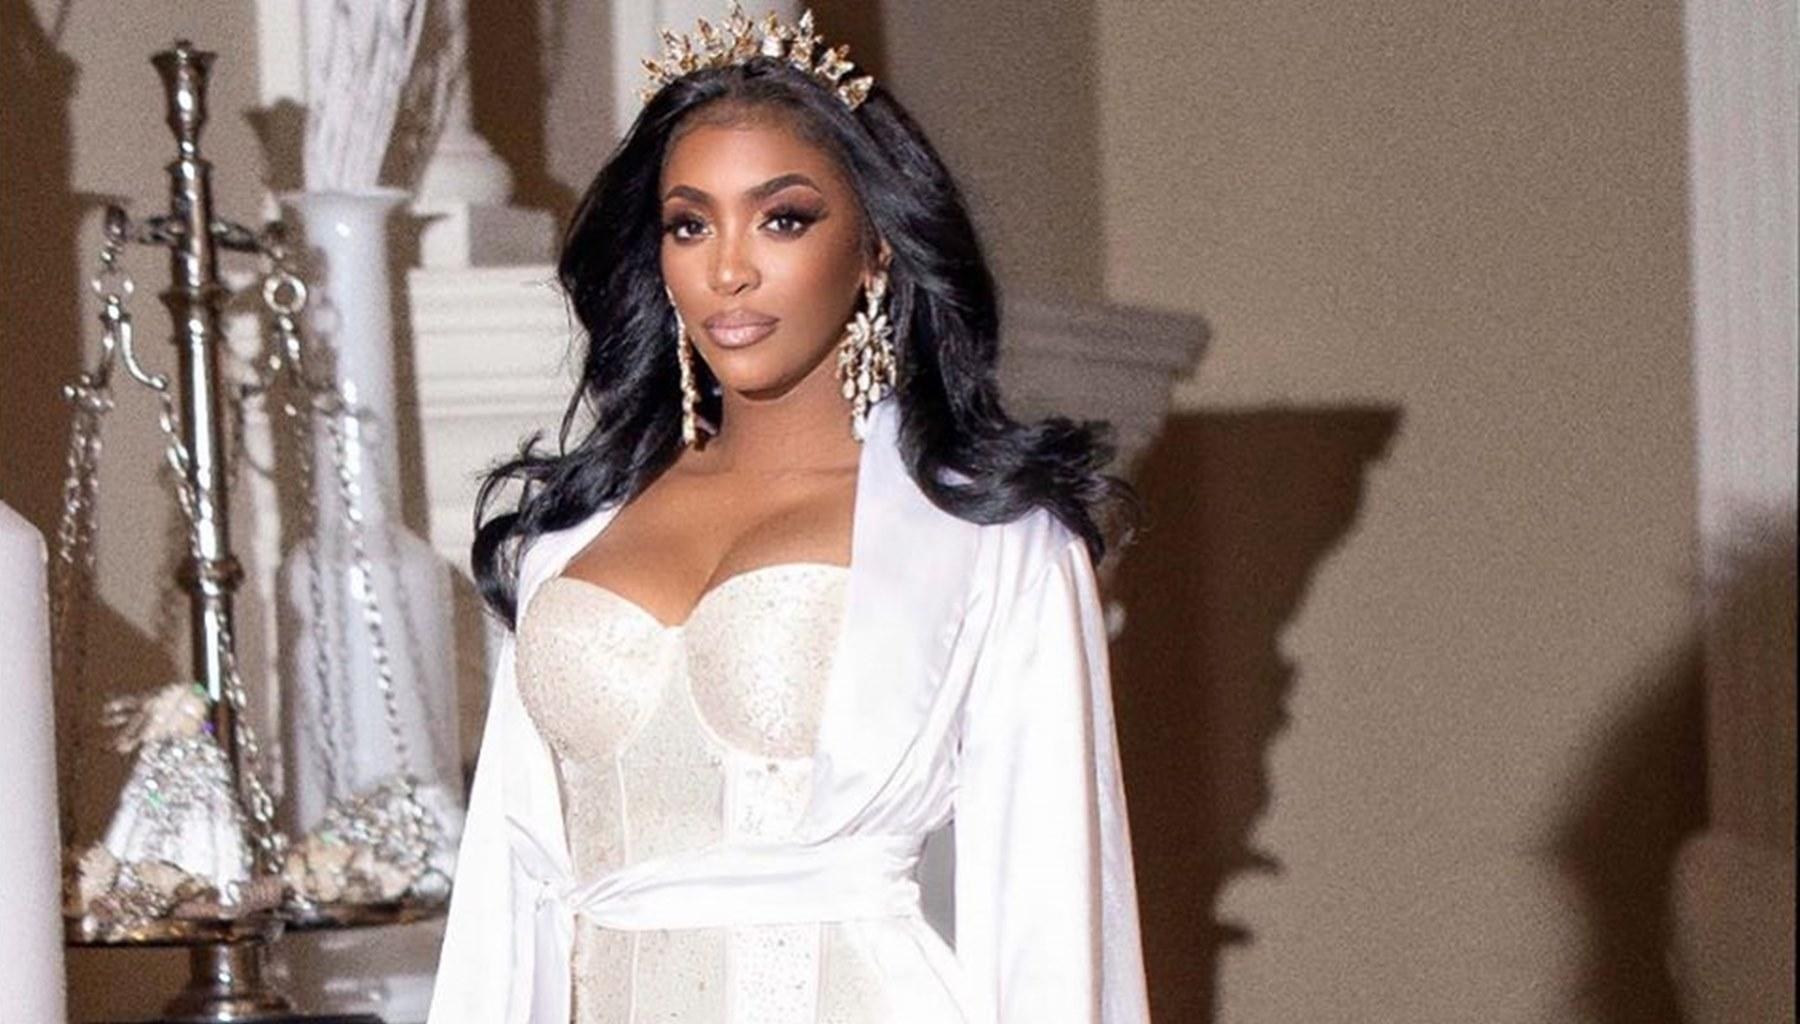 Porsha Williams Has Deleted All Her Instagram Pictures With Fiancé Dennis McKinley For This Reason According To Fans